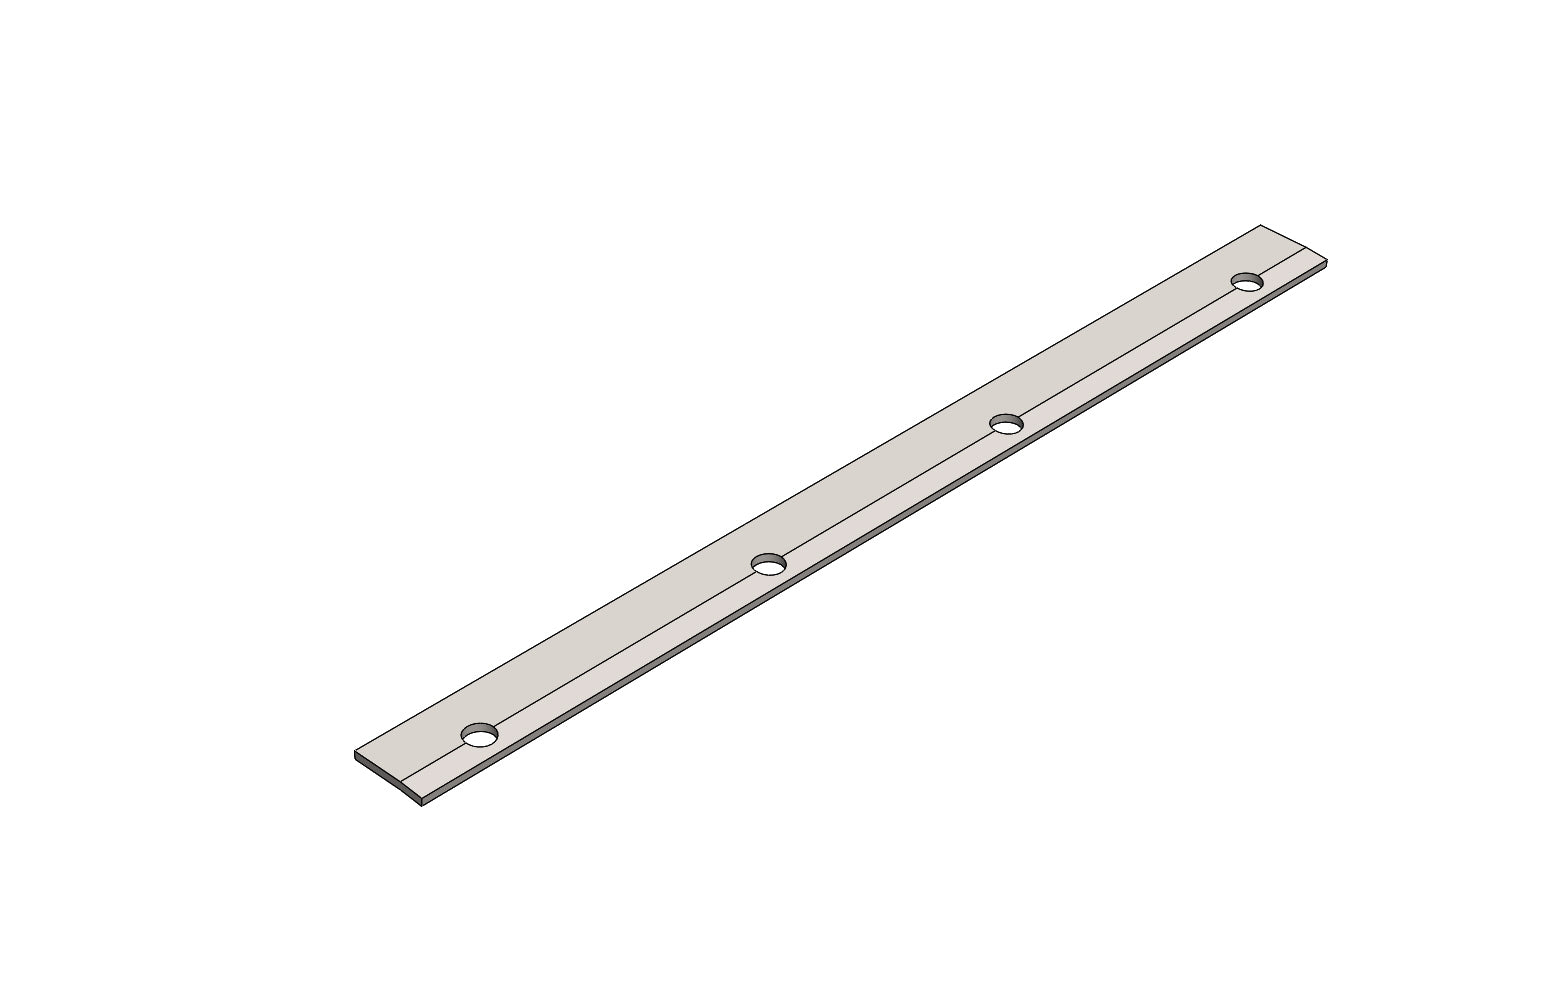 TC6272114A - CLAMP PLATE - King TC8 Spare Part